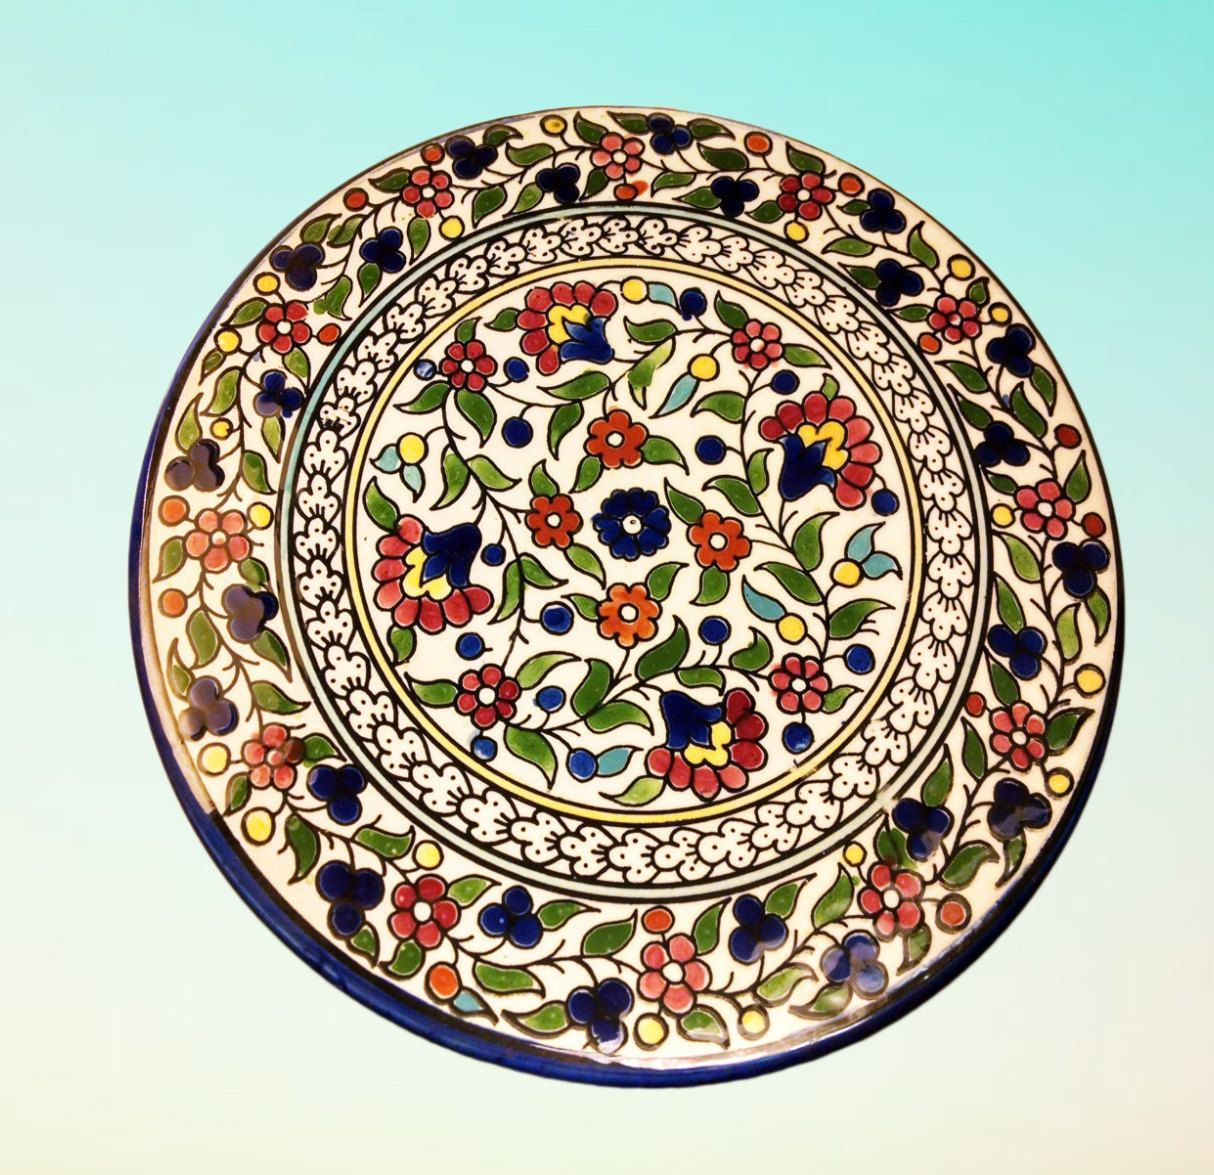 Large Decorative Ceramic Plates Red Floral Plate Wall Decor  Food Plate  Desert Tray